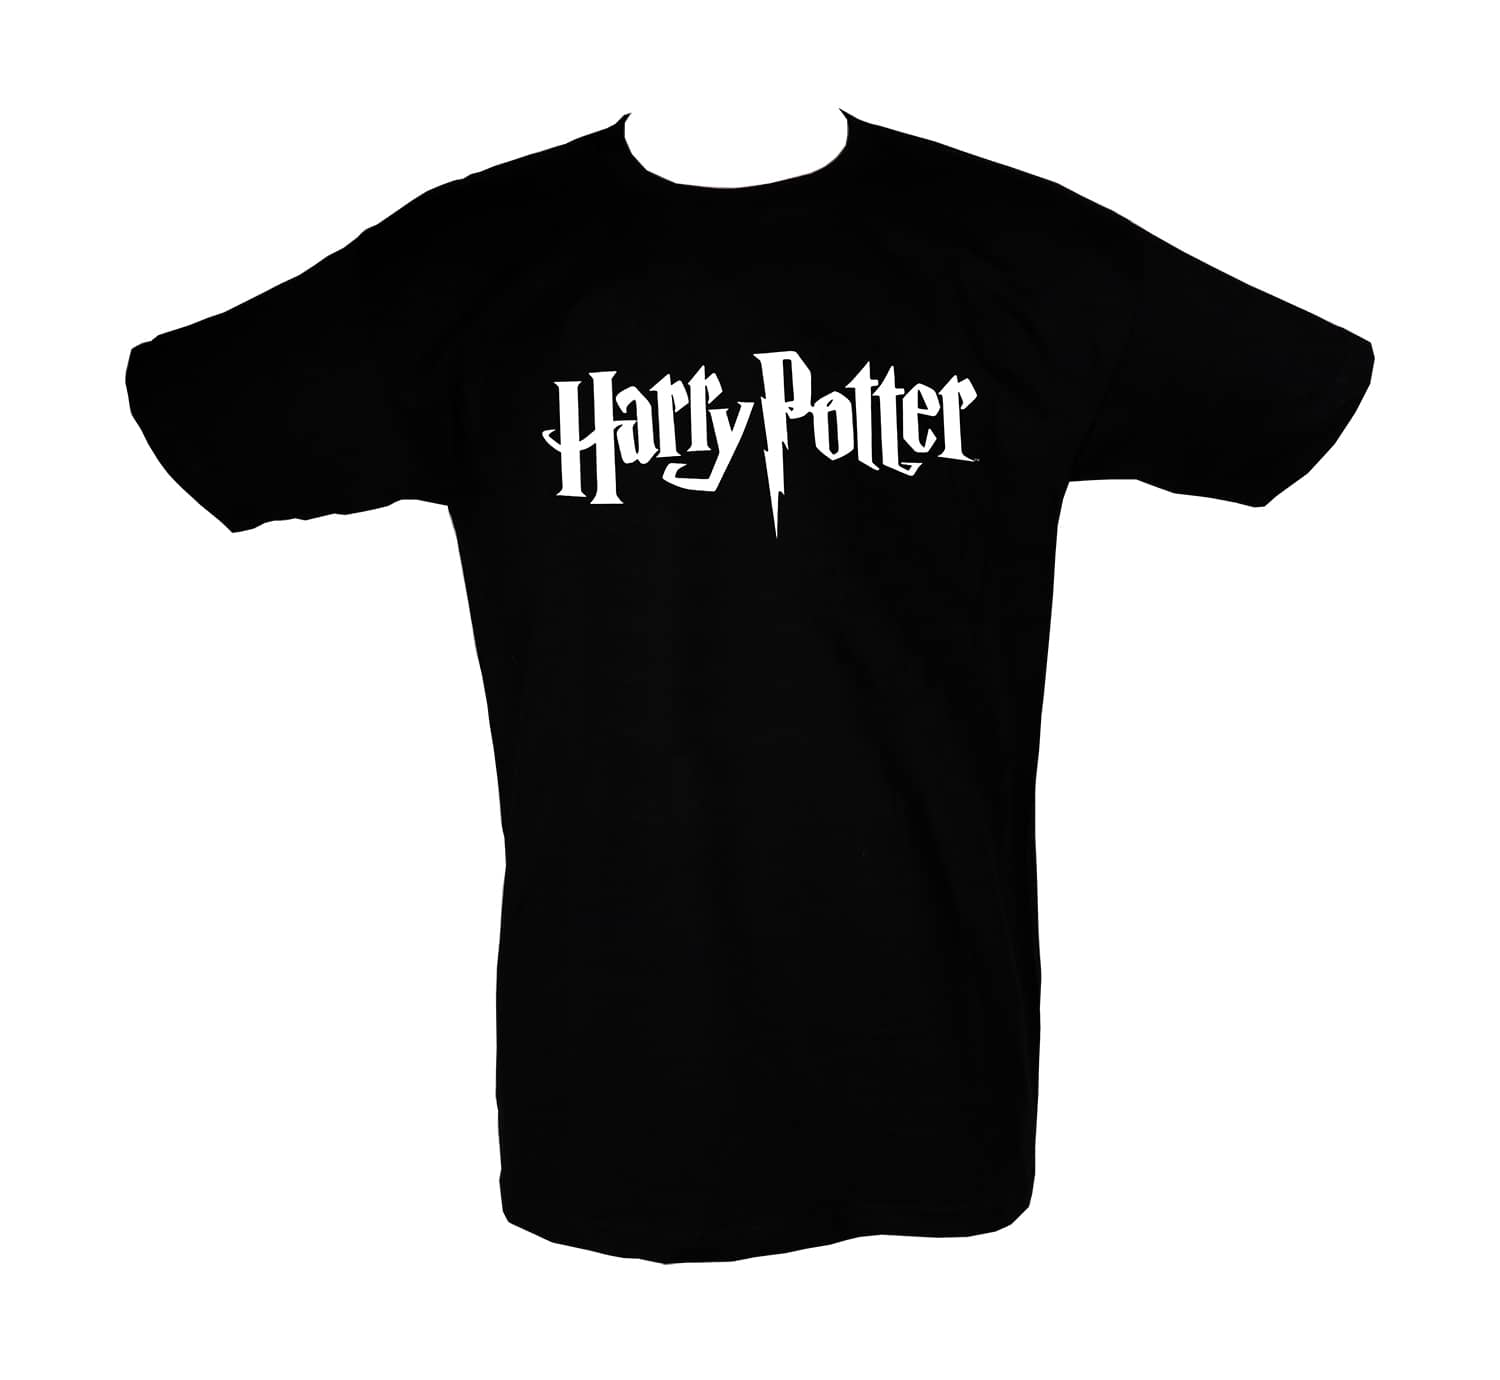 LOGO HARRY POTTER CAMISETA NEGRA CHICO T-L HARRY POTTER | 8435450206535 | Universal Cómics